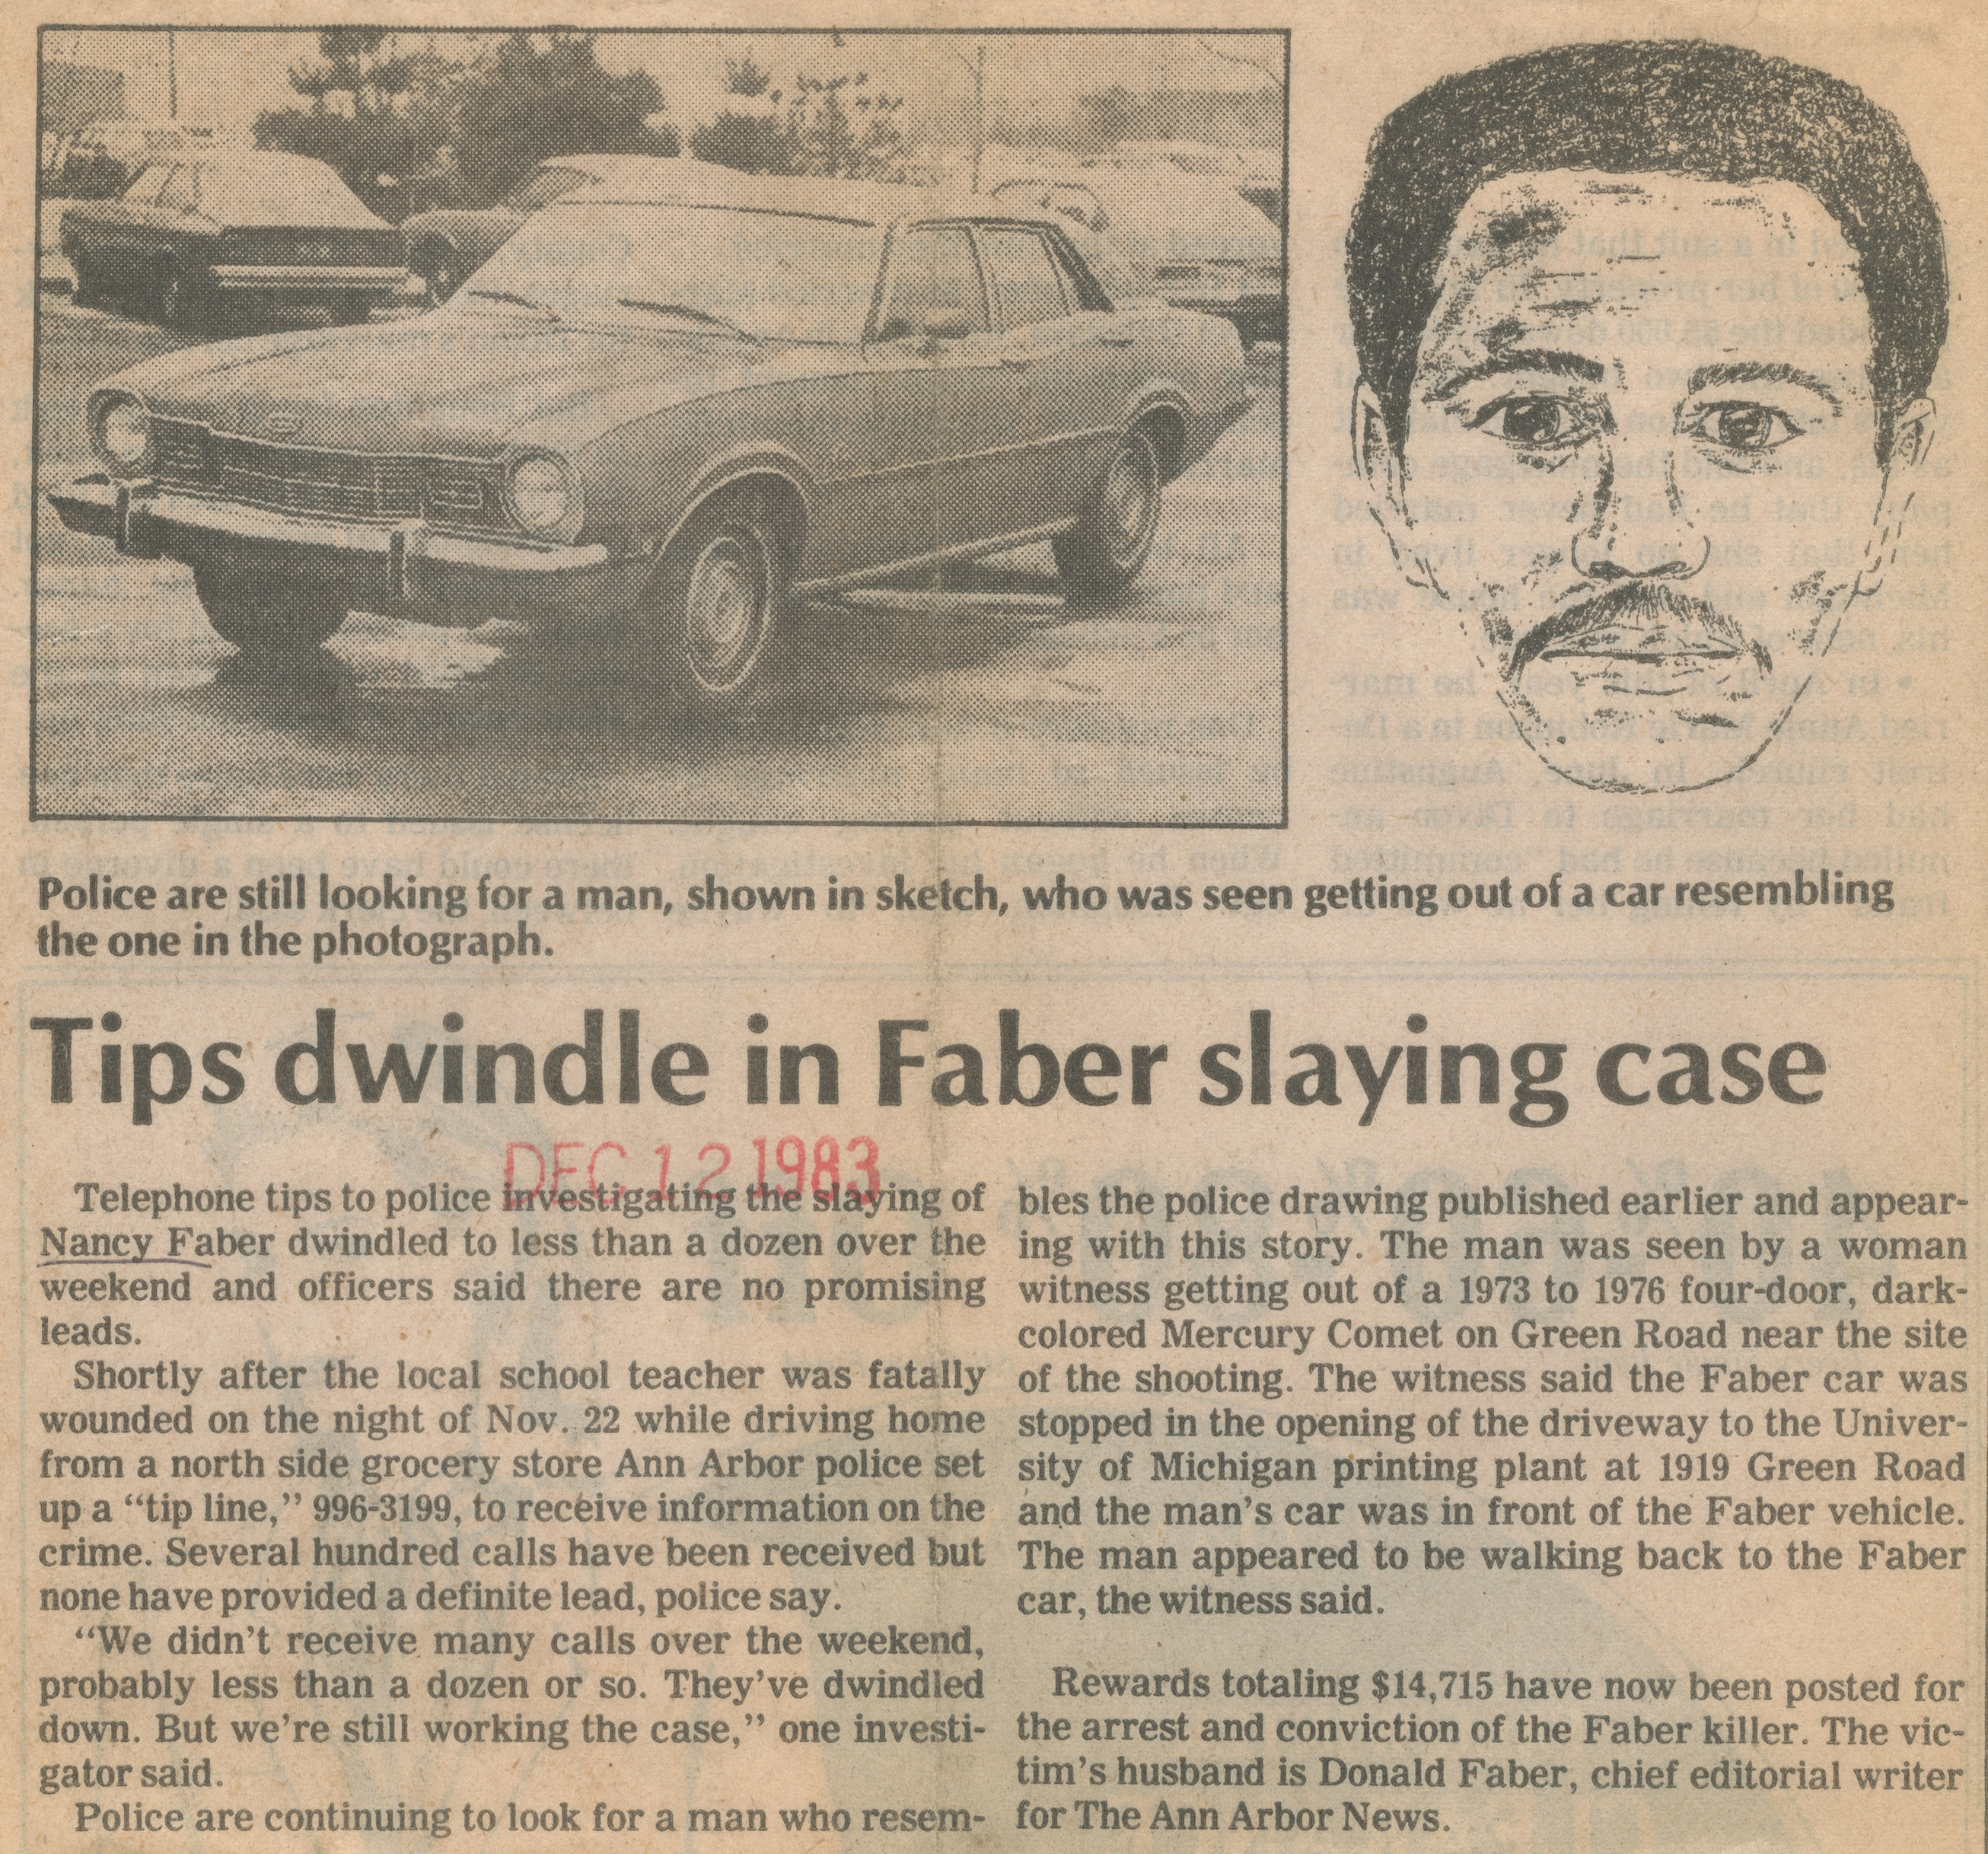 Tips Dwindle In Faber Slaying Case image